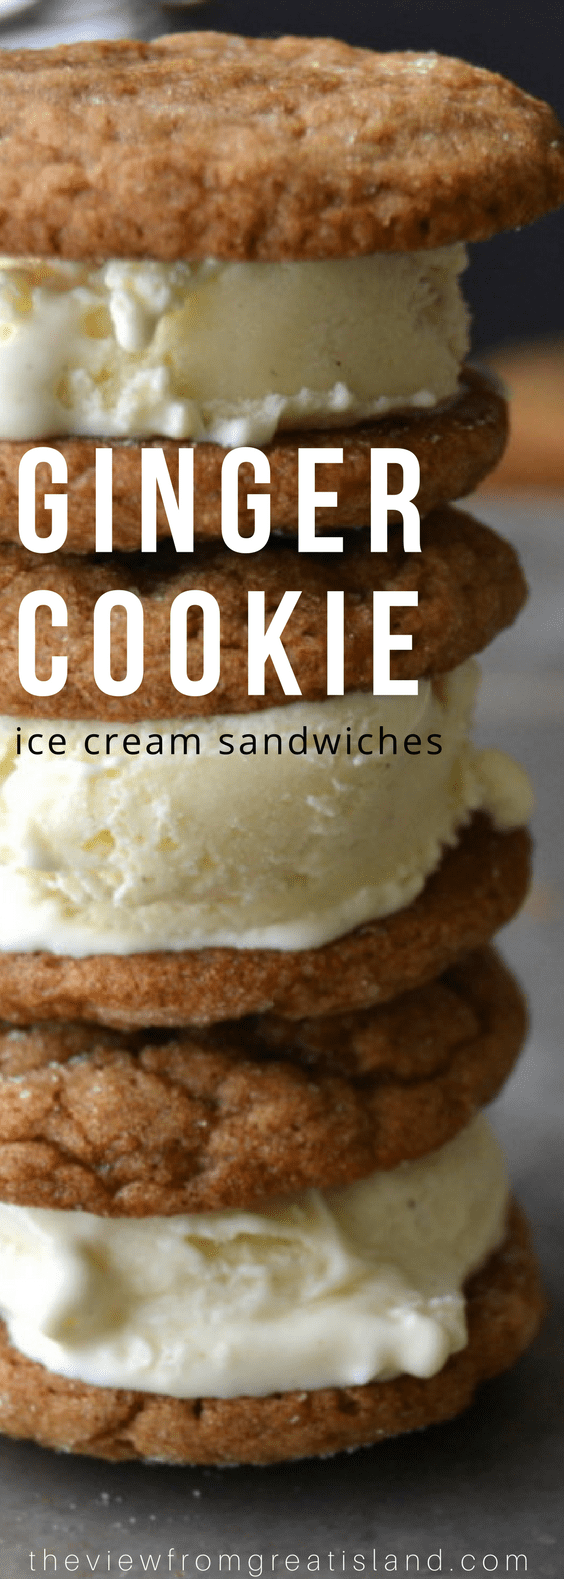 Ginger Cookie and Nutmeg Ice Cream Sandwiches ~ a little bit summer, a little bit fall, and a whole lot delicious! #dessert #ice cream #falldessert #gingercookies #gingersnaps #homemadeicecream #nutmeg #frozendessert